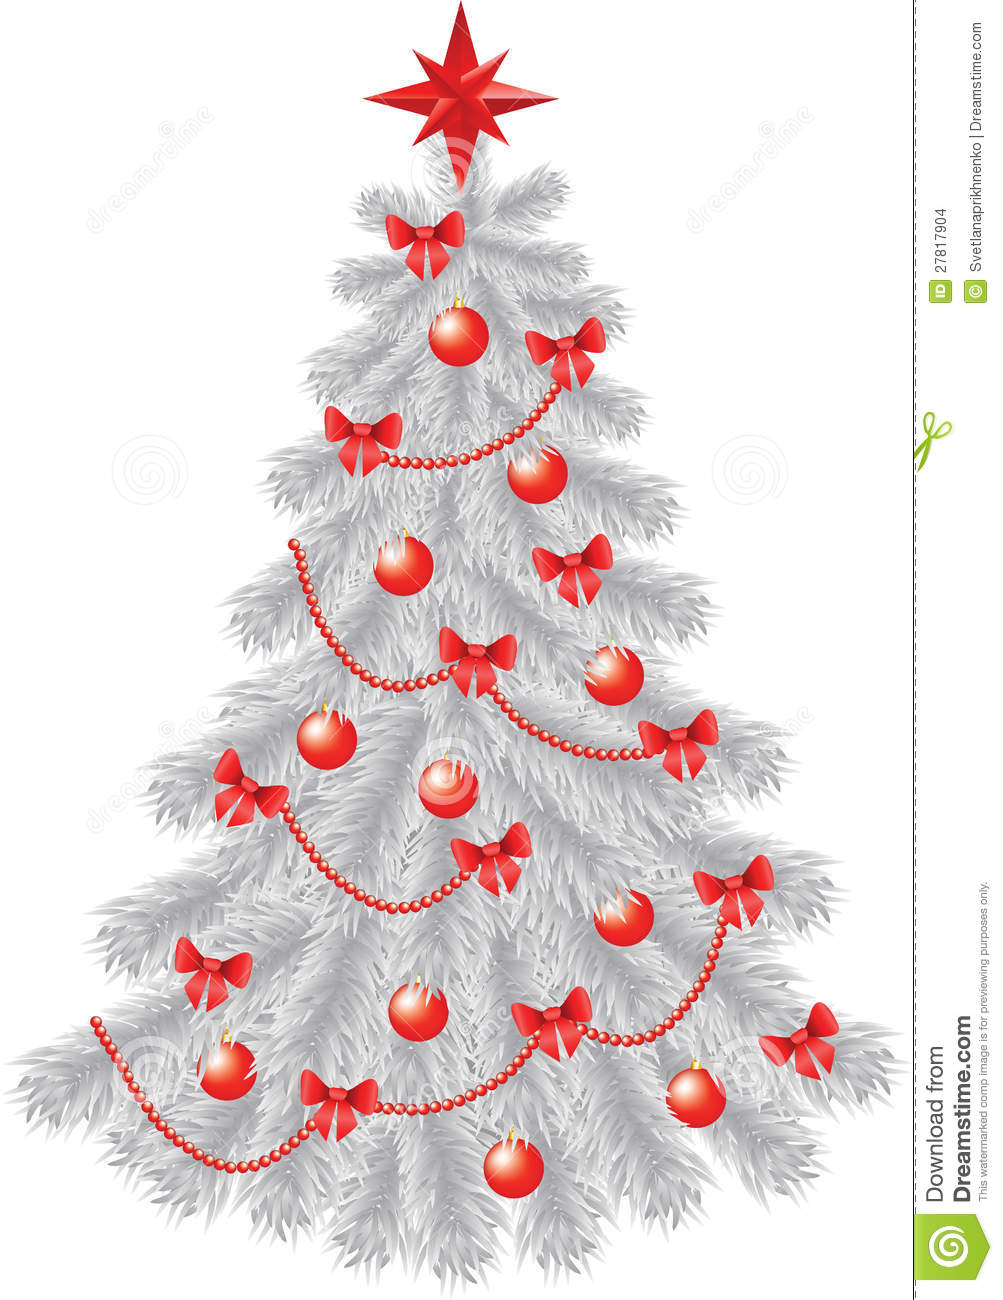 white christmas tree with red decoration - White Christmas Tree With Red Decorations